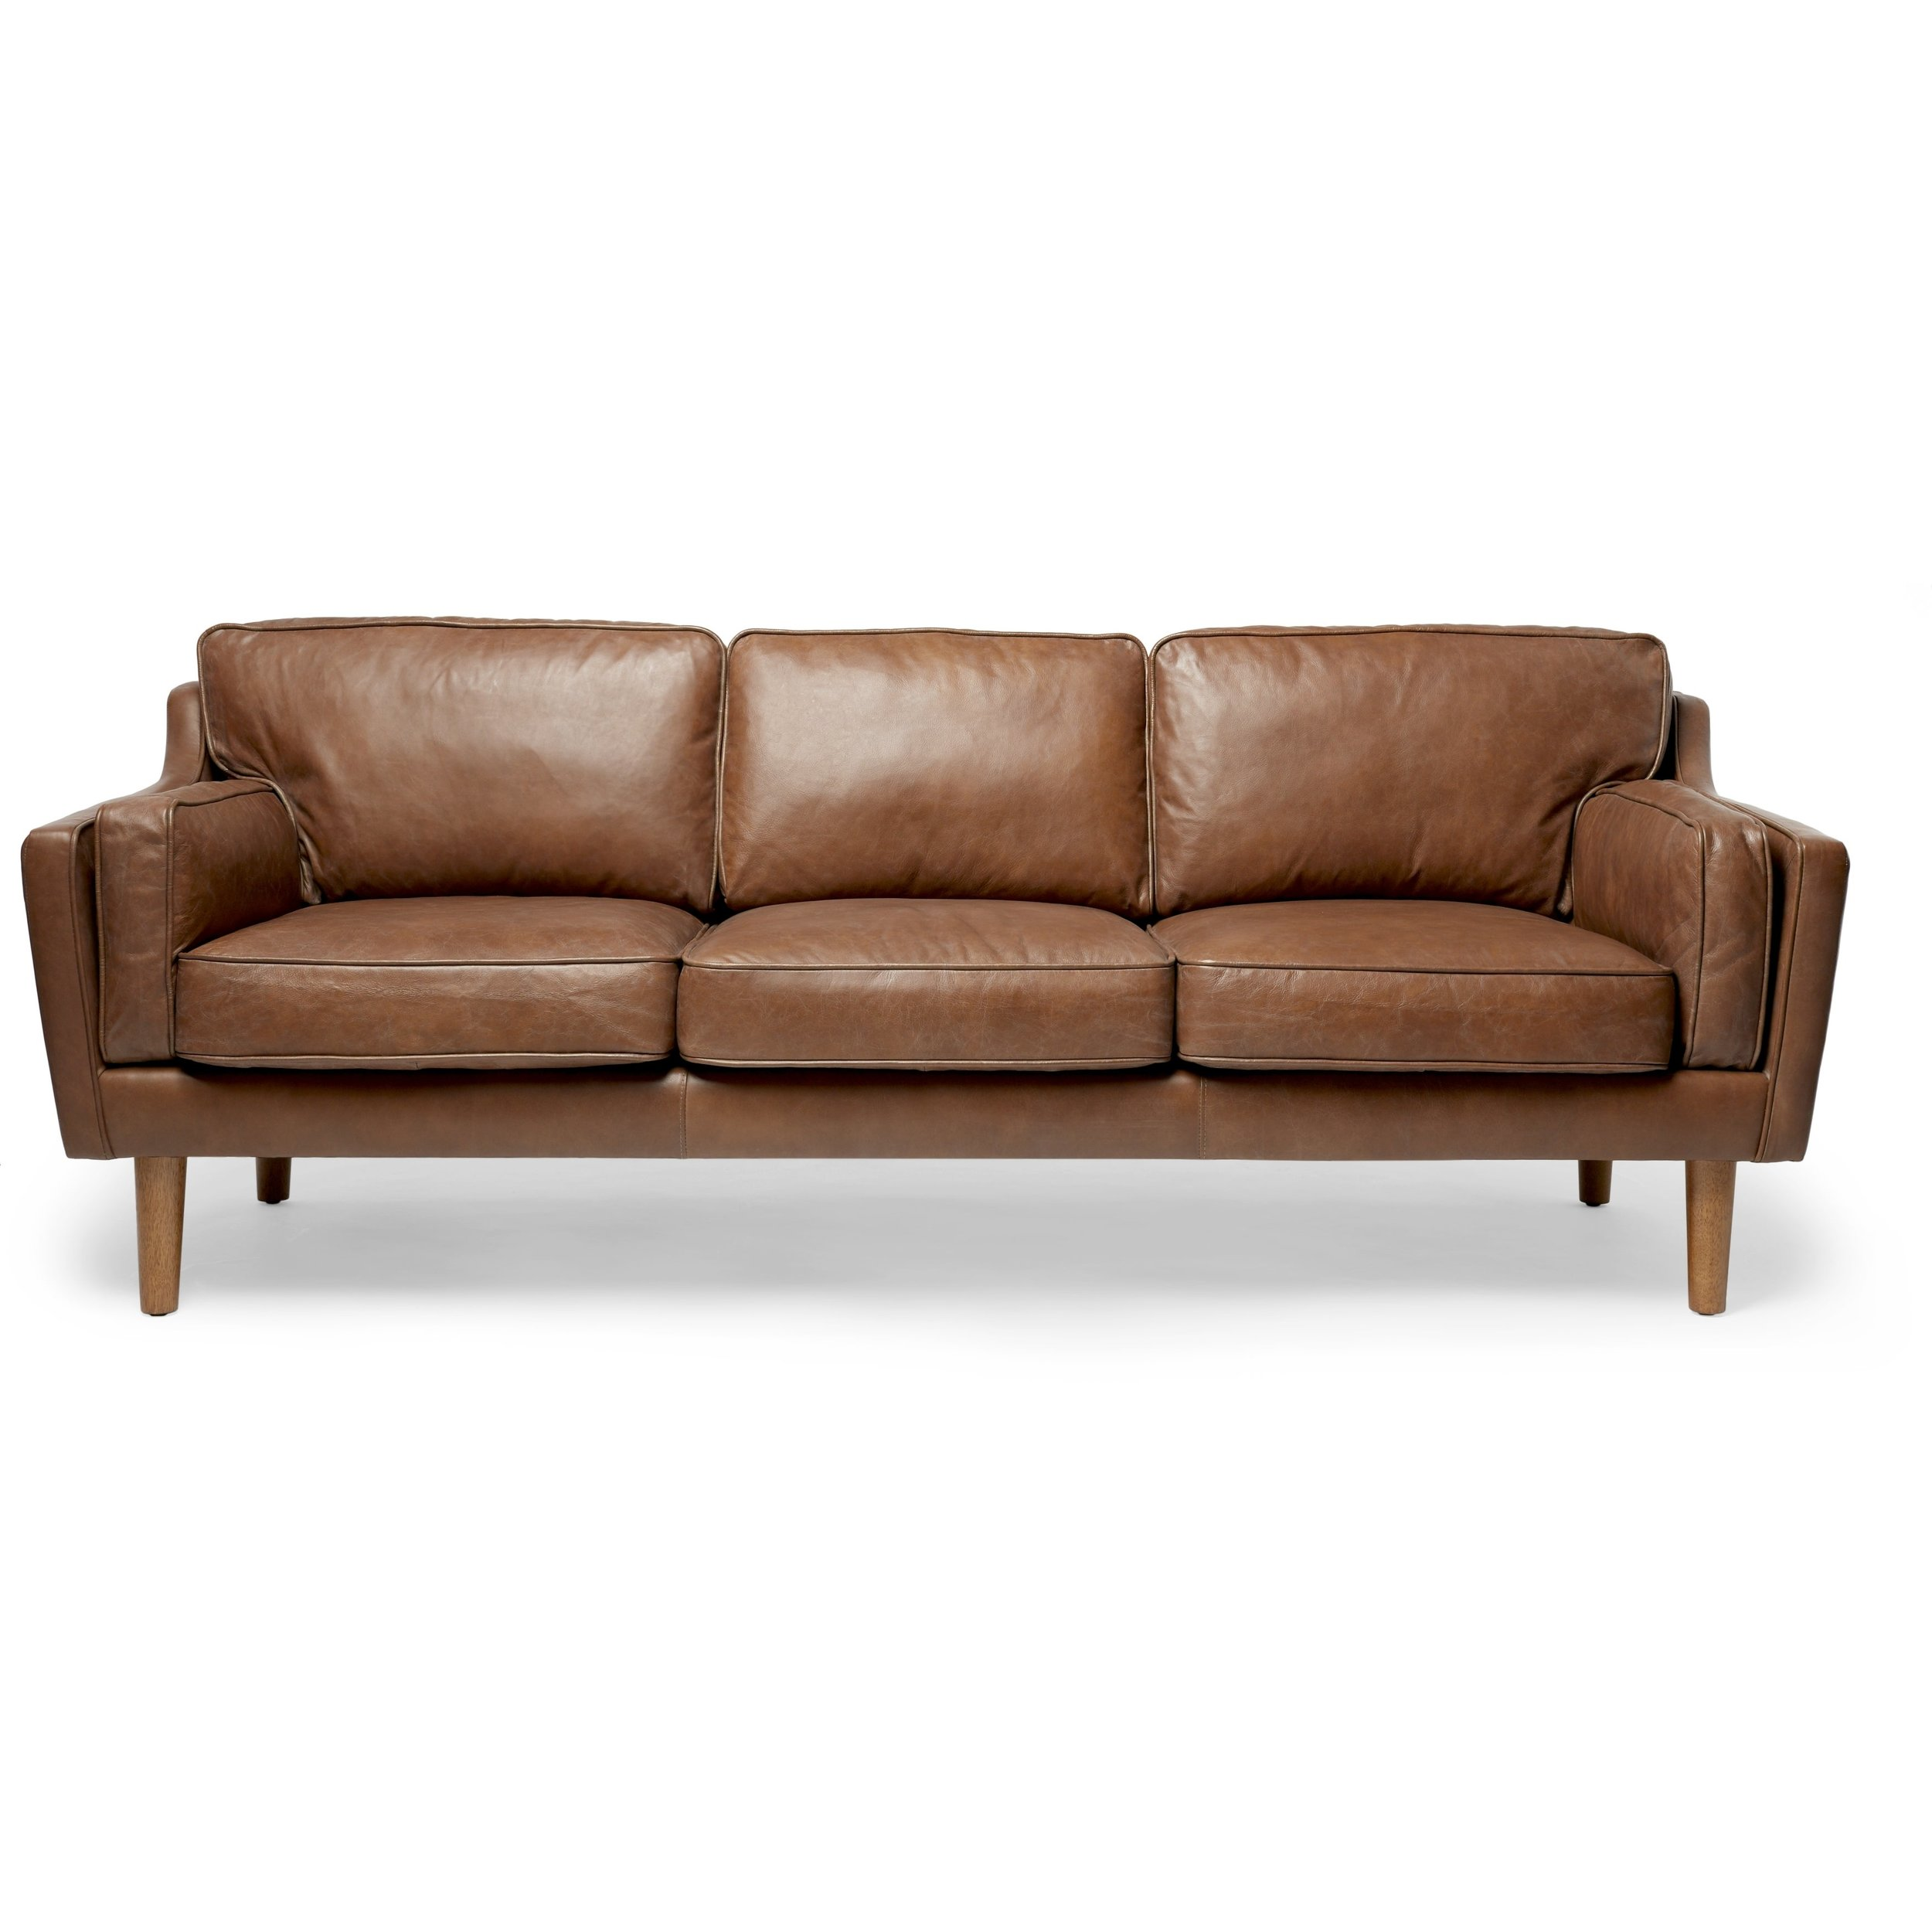 Gideon Leather Sofa $325